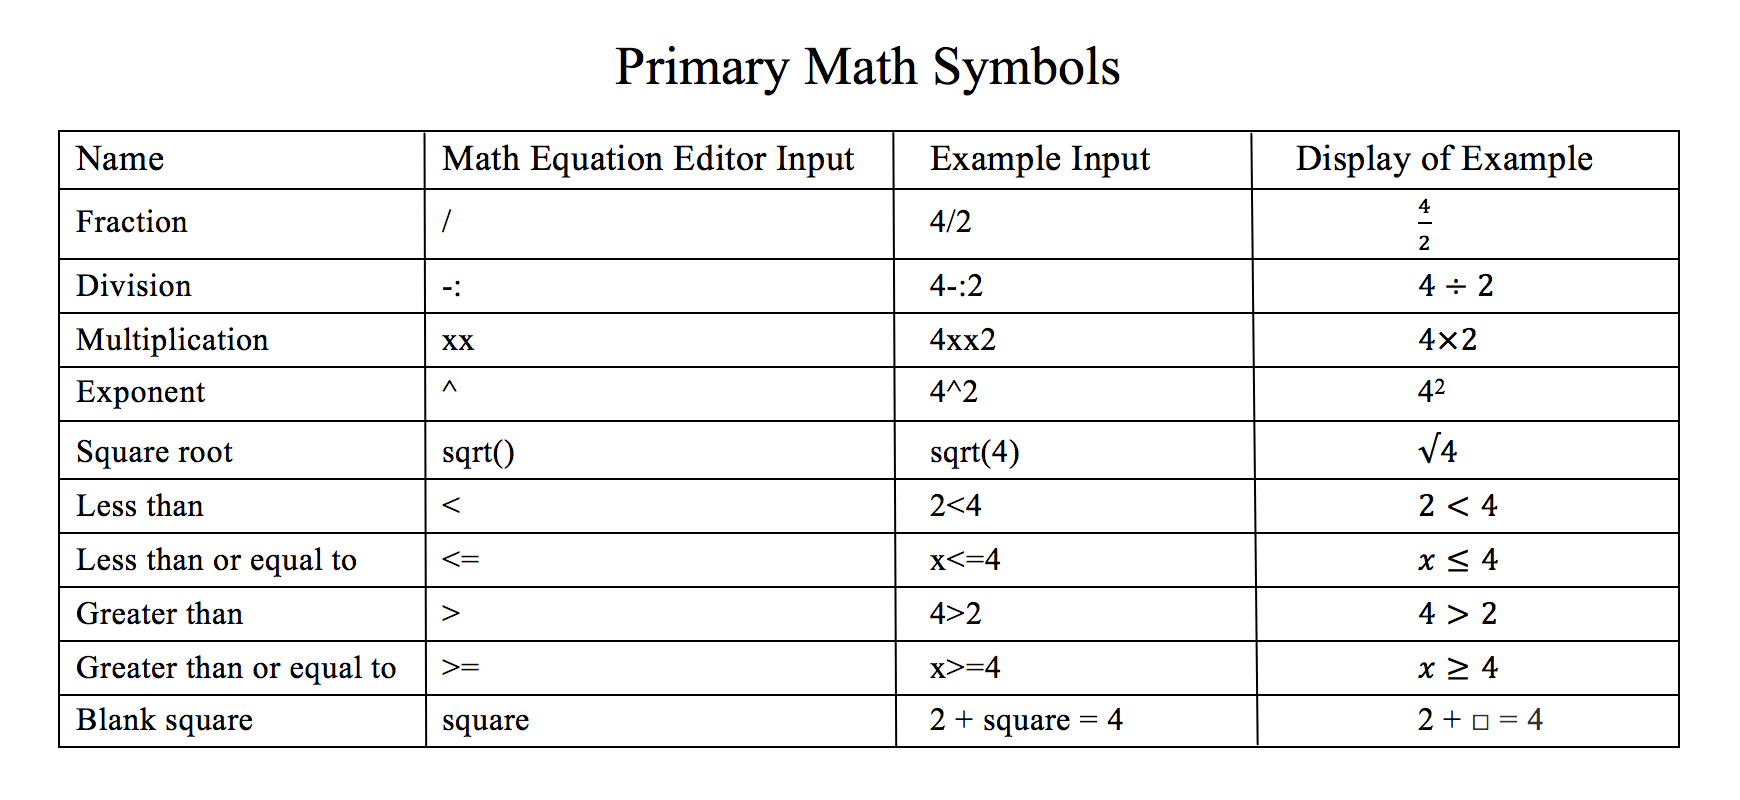 itembank: how can i add math symbols to a math equation response